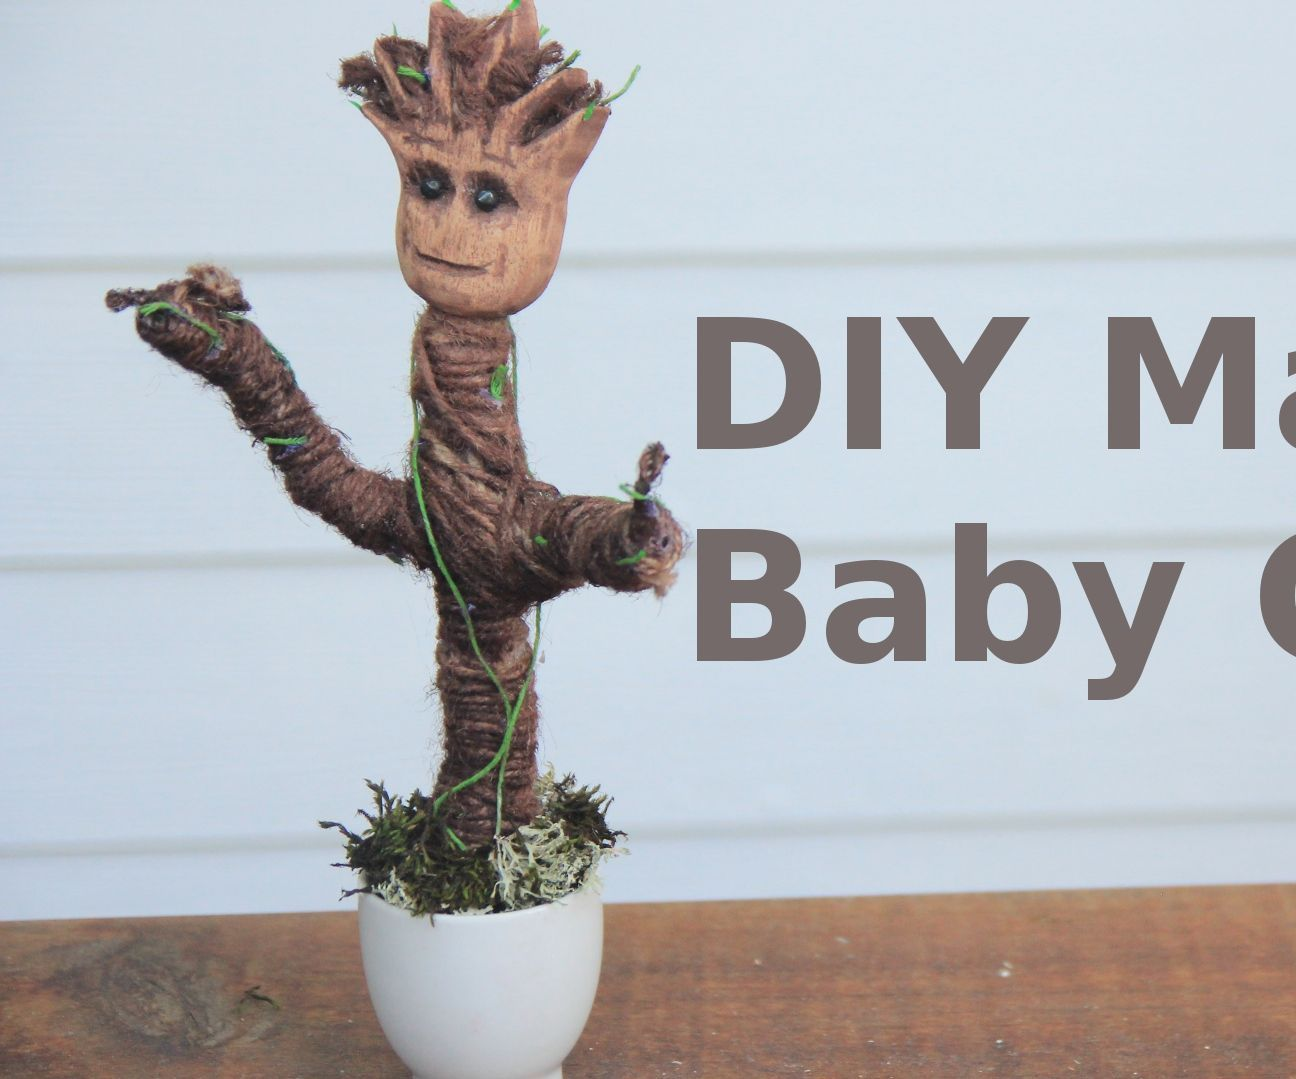 DIY Making Groot from Guardians of the Galaxy